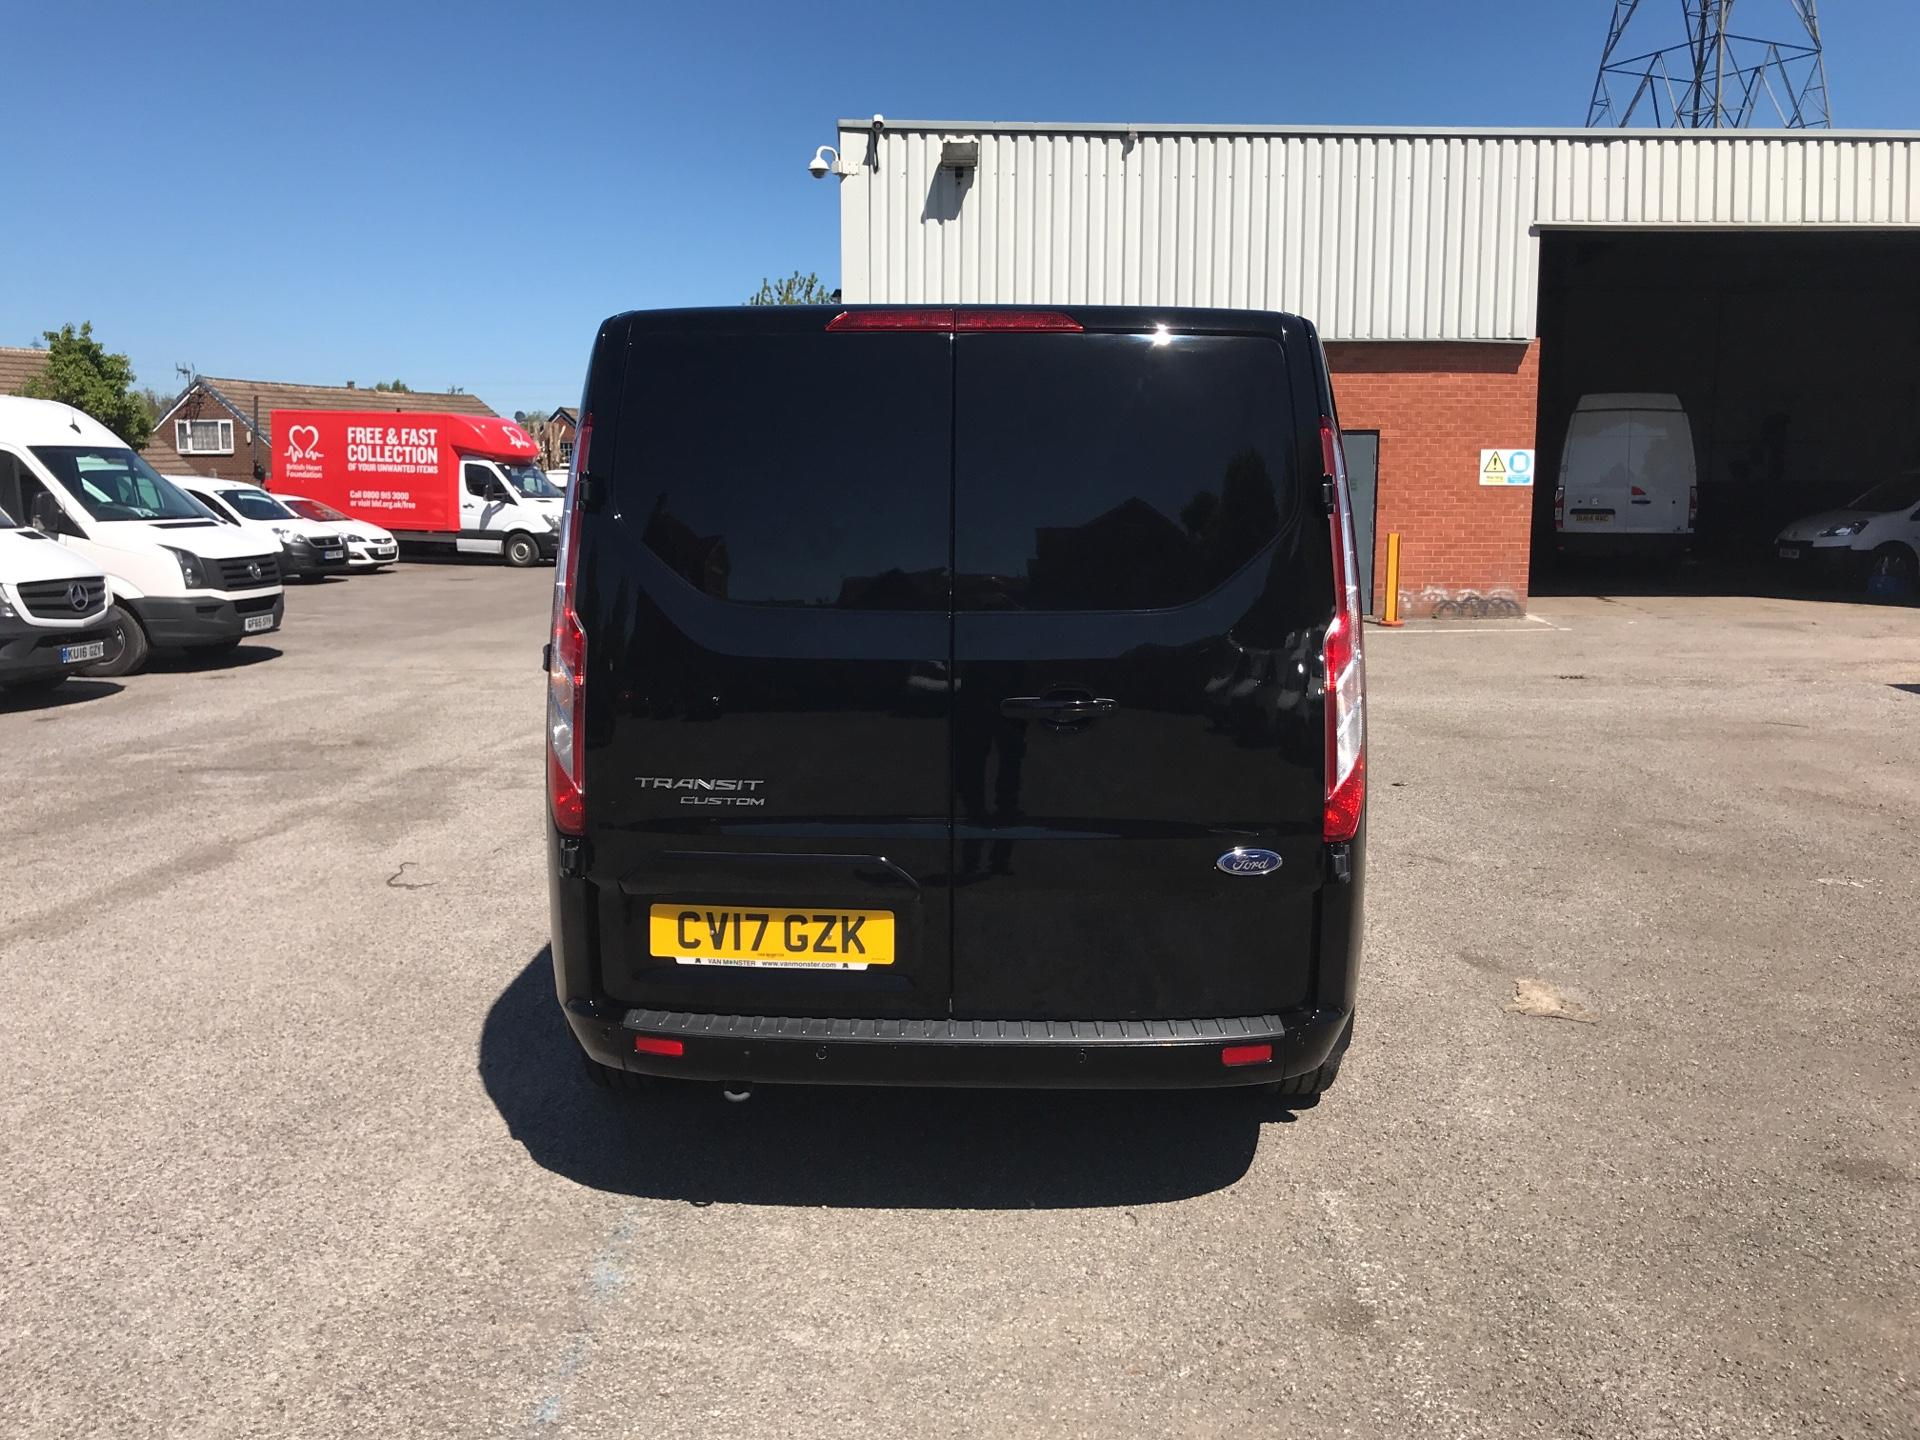 2017 Ford Transit Custom 2.0 Tdci 130Ps Low Roof LIMITED Van EURO 6 (CV17GZK) Image 4